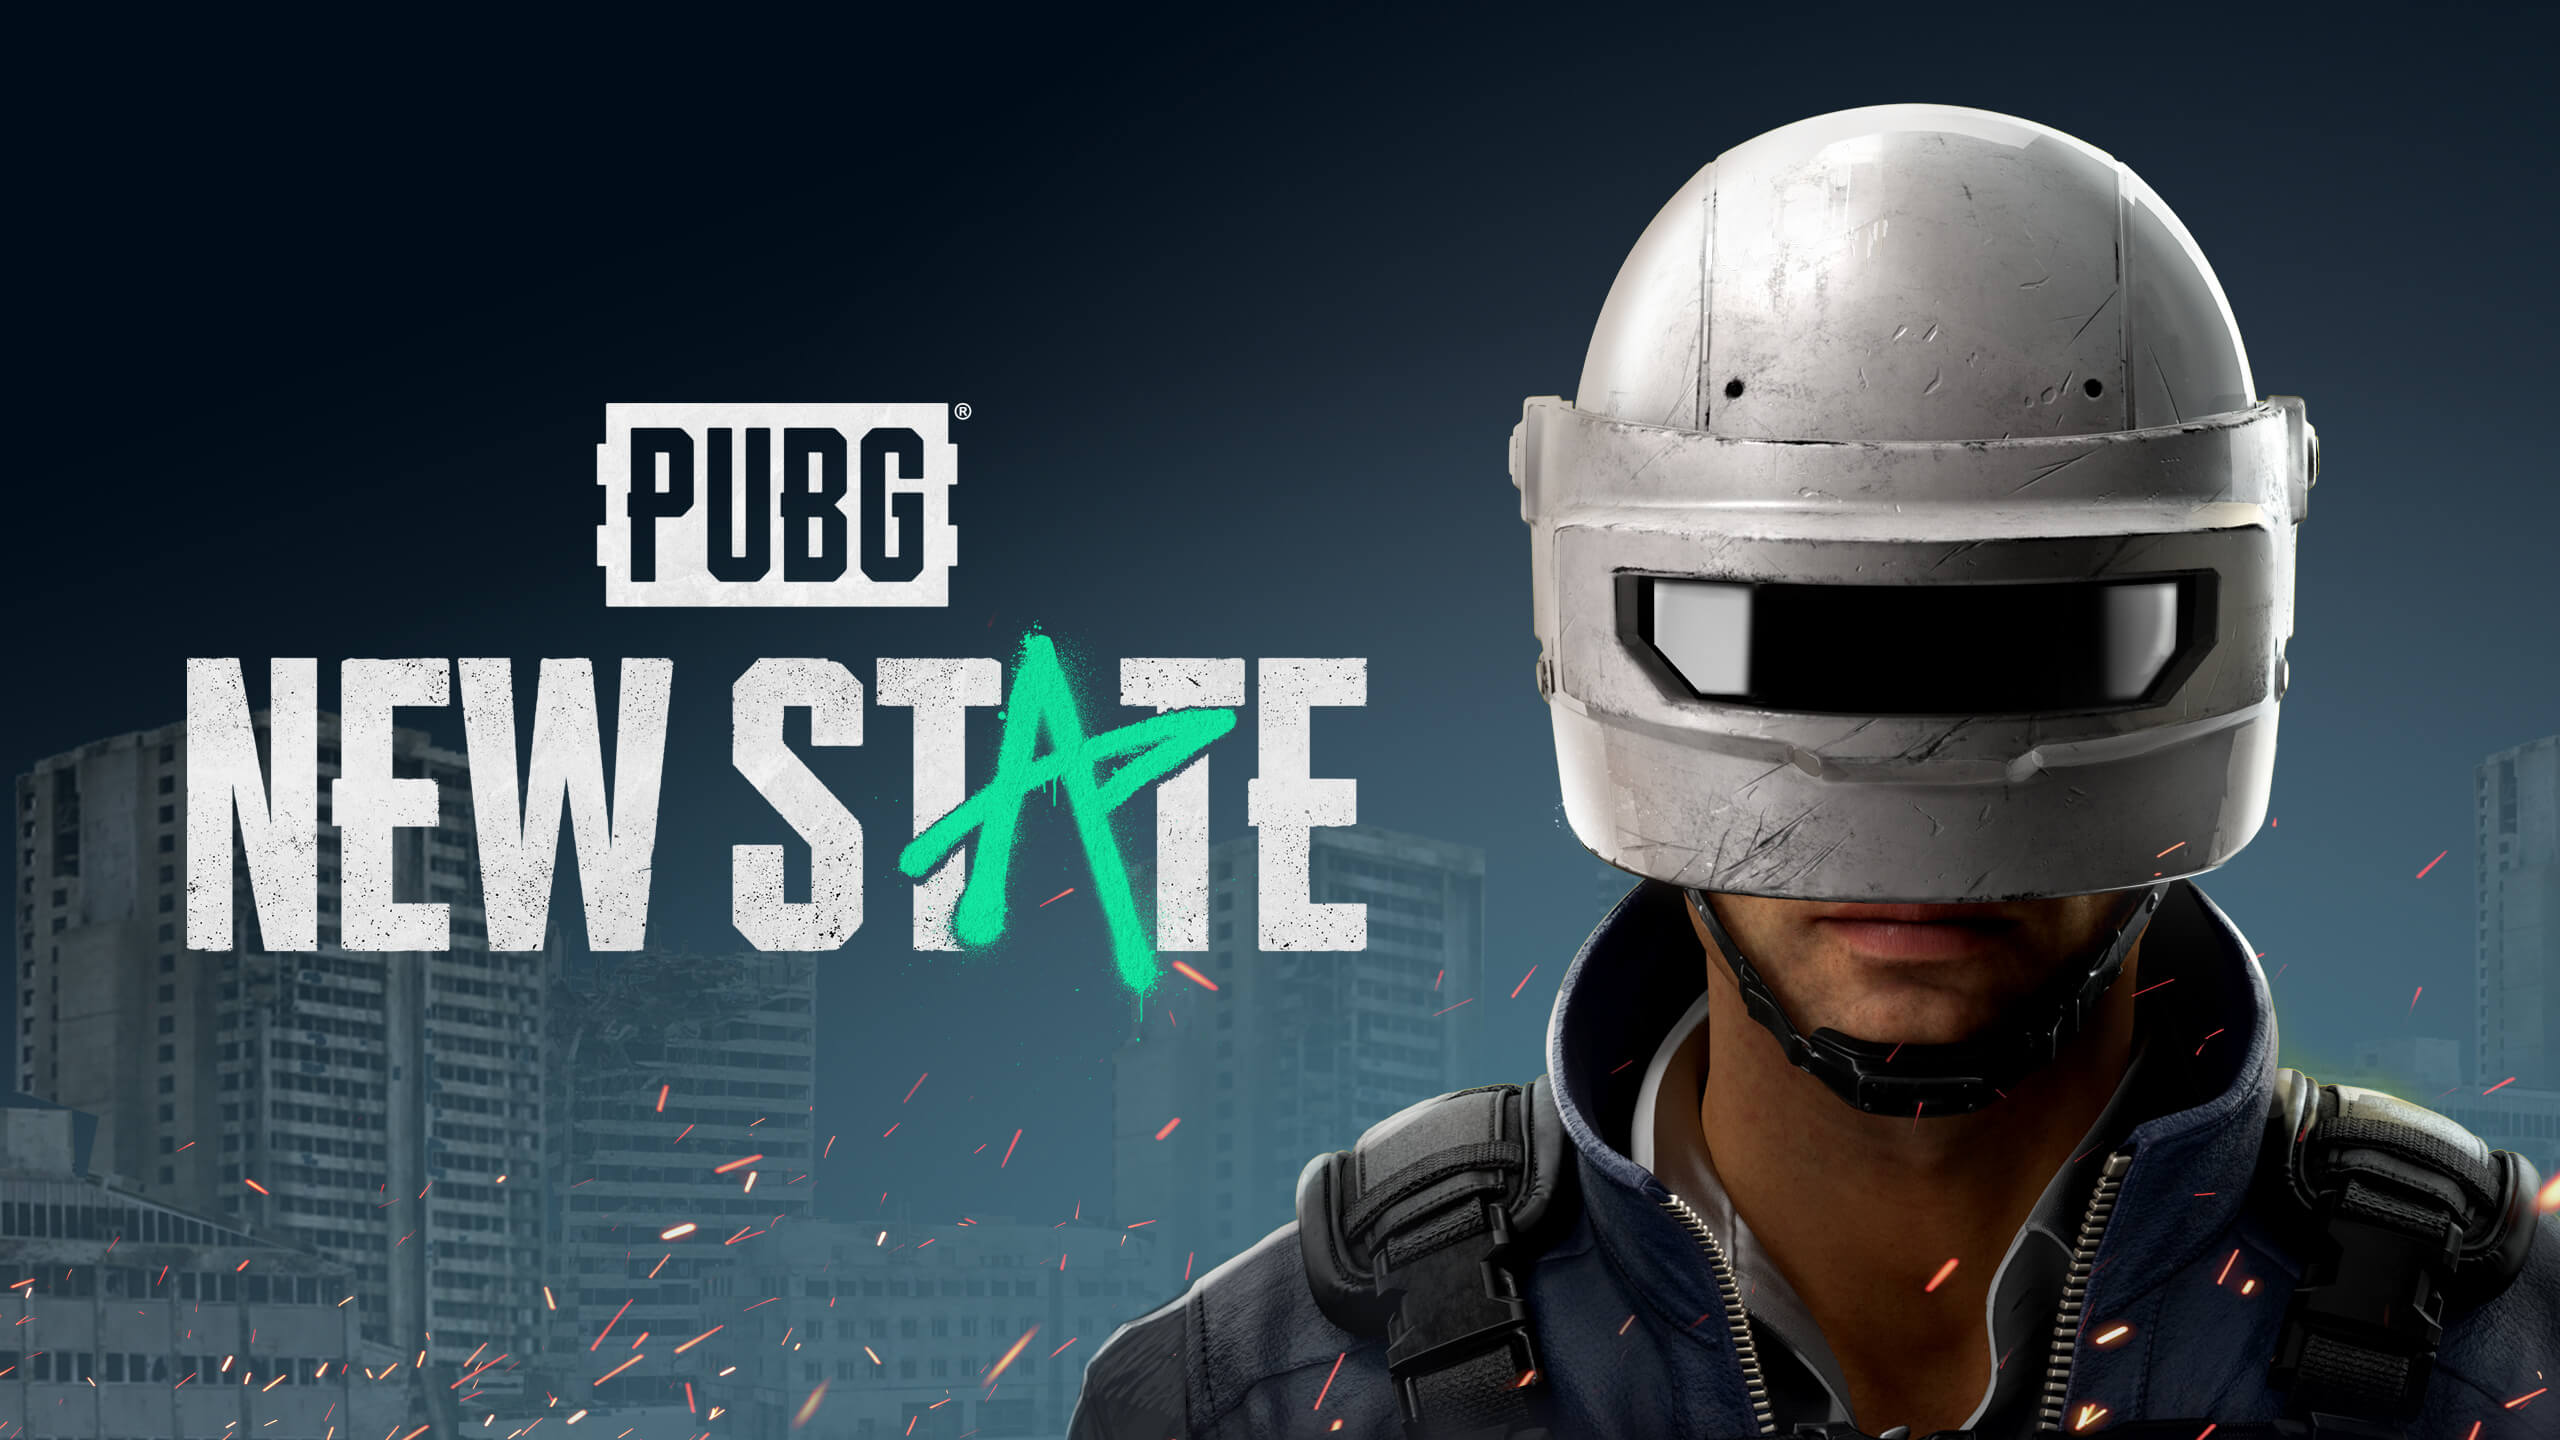 PUBG New State a new battle royale experience built from the 2560x1440